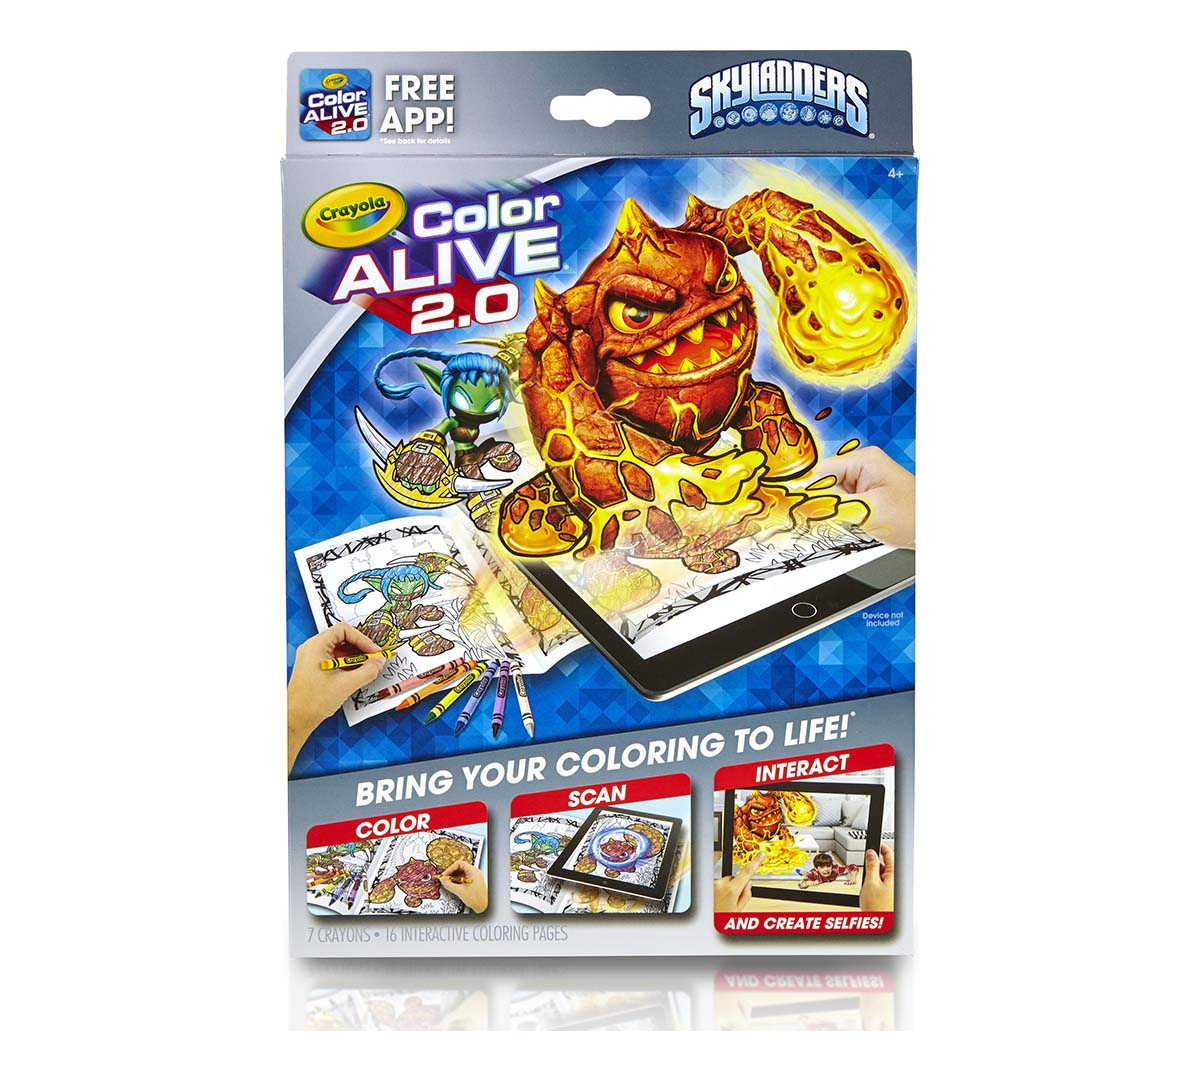 Color Alive 2.0, Skylanders